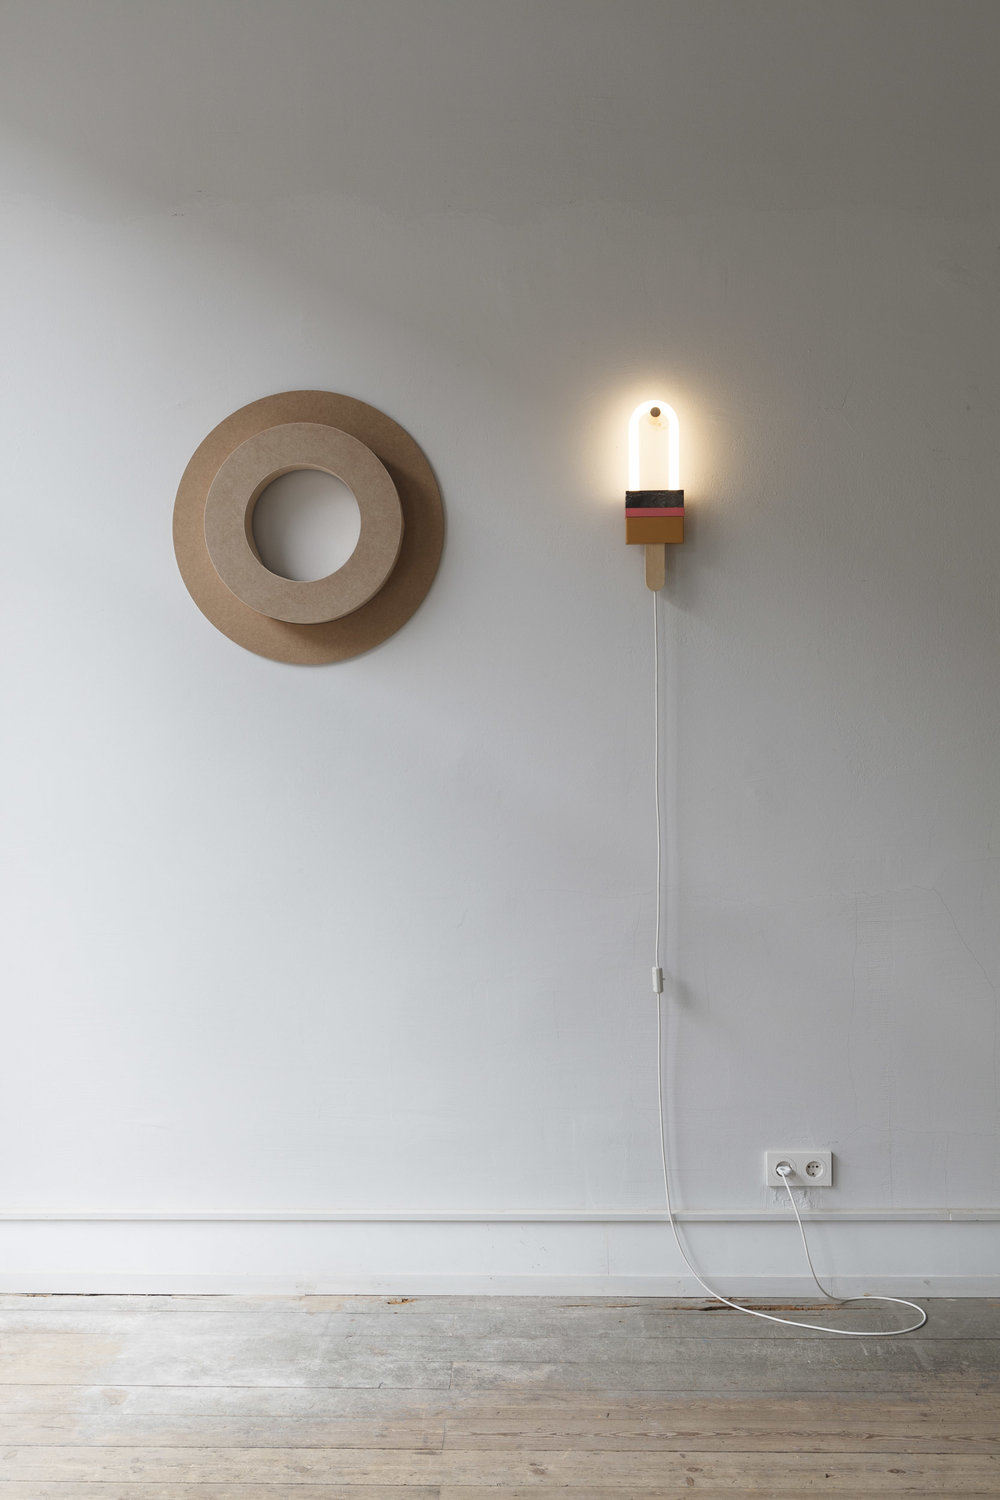 WALL LIGHT POPP,  GLASS, ACRYLIC, LACQUERED MDF, NATURAL STONE, WOOD  14 x 4 x 44cm  Many thanks to  Van Den Weghe , Belgium for their support